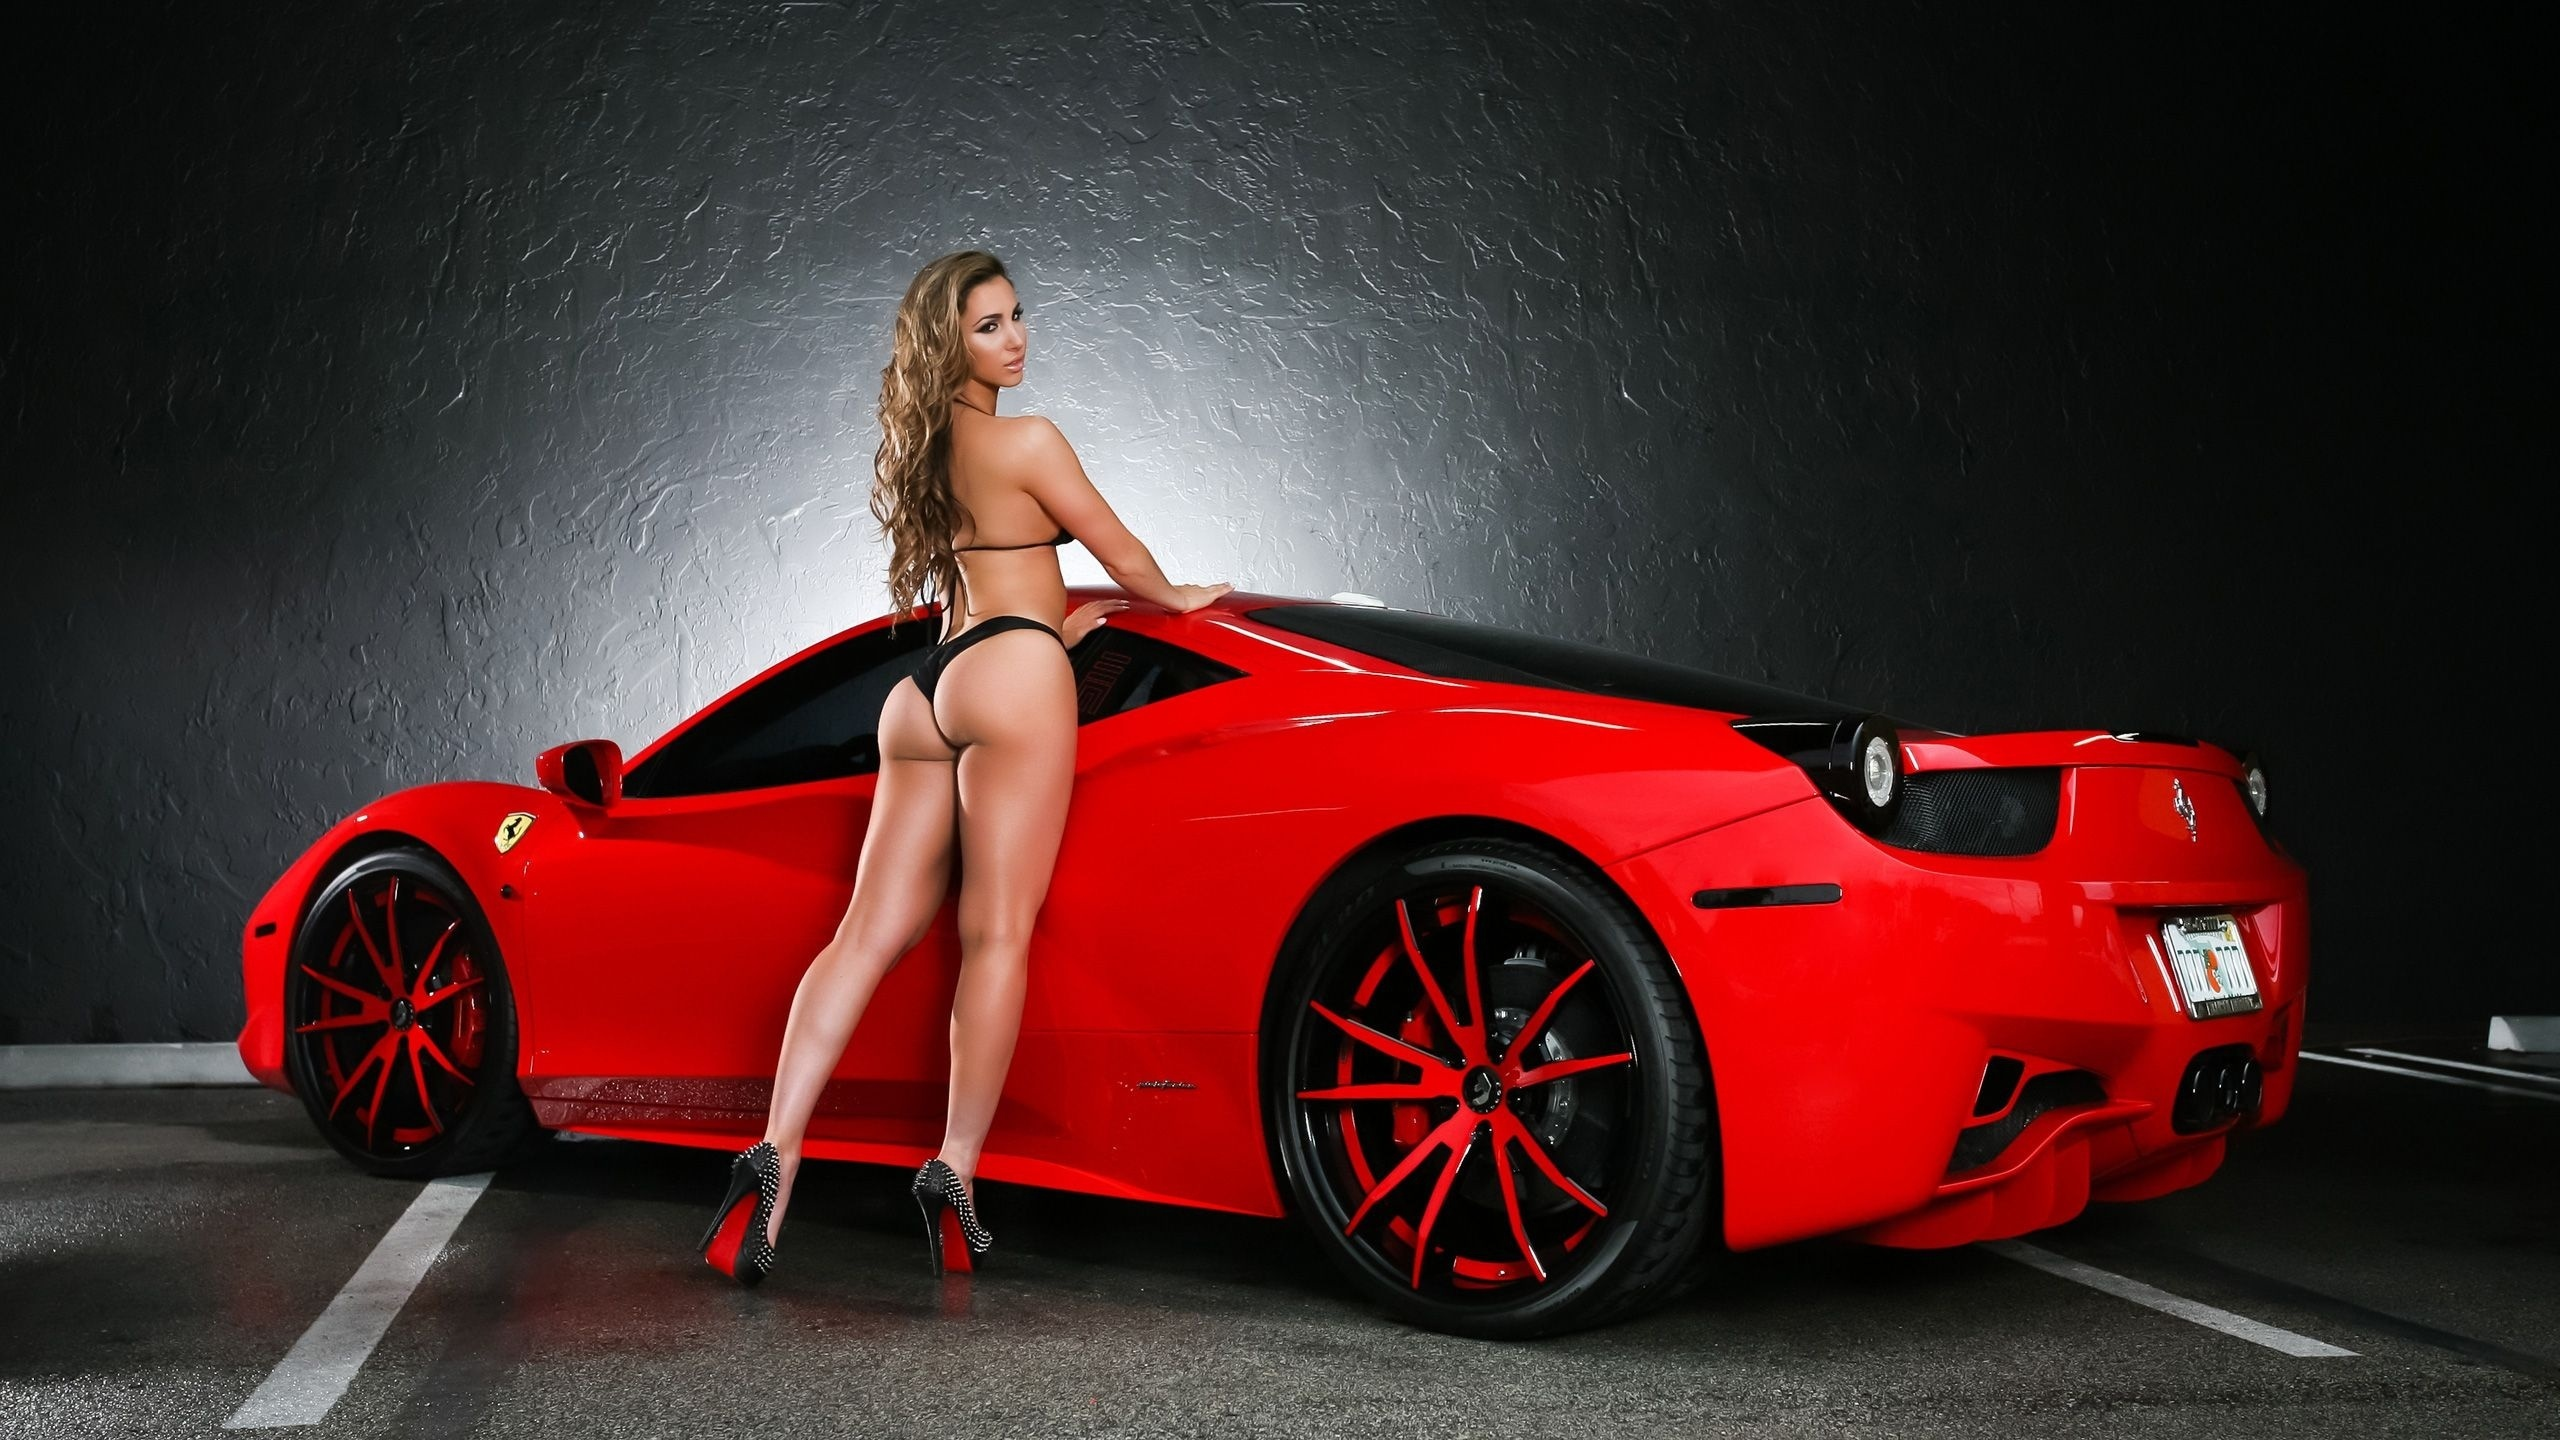 Geting big naked girls and cars transmissiion